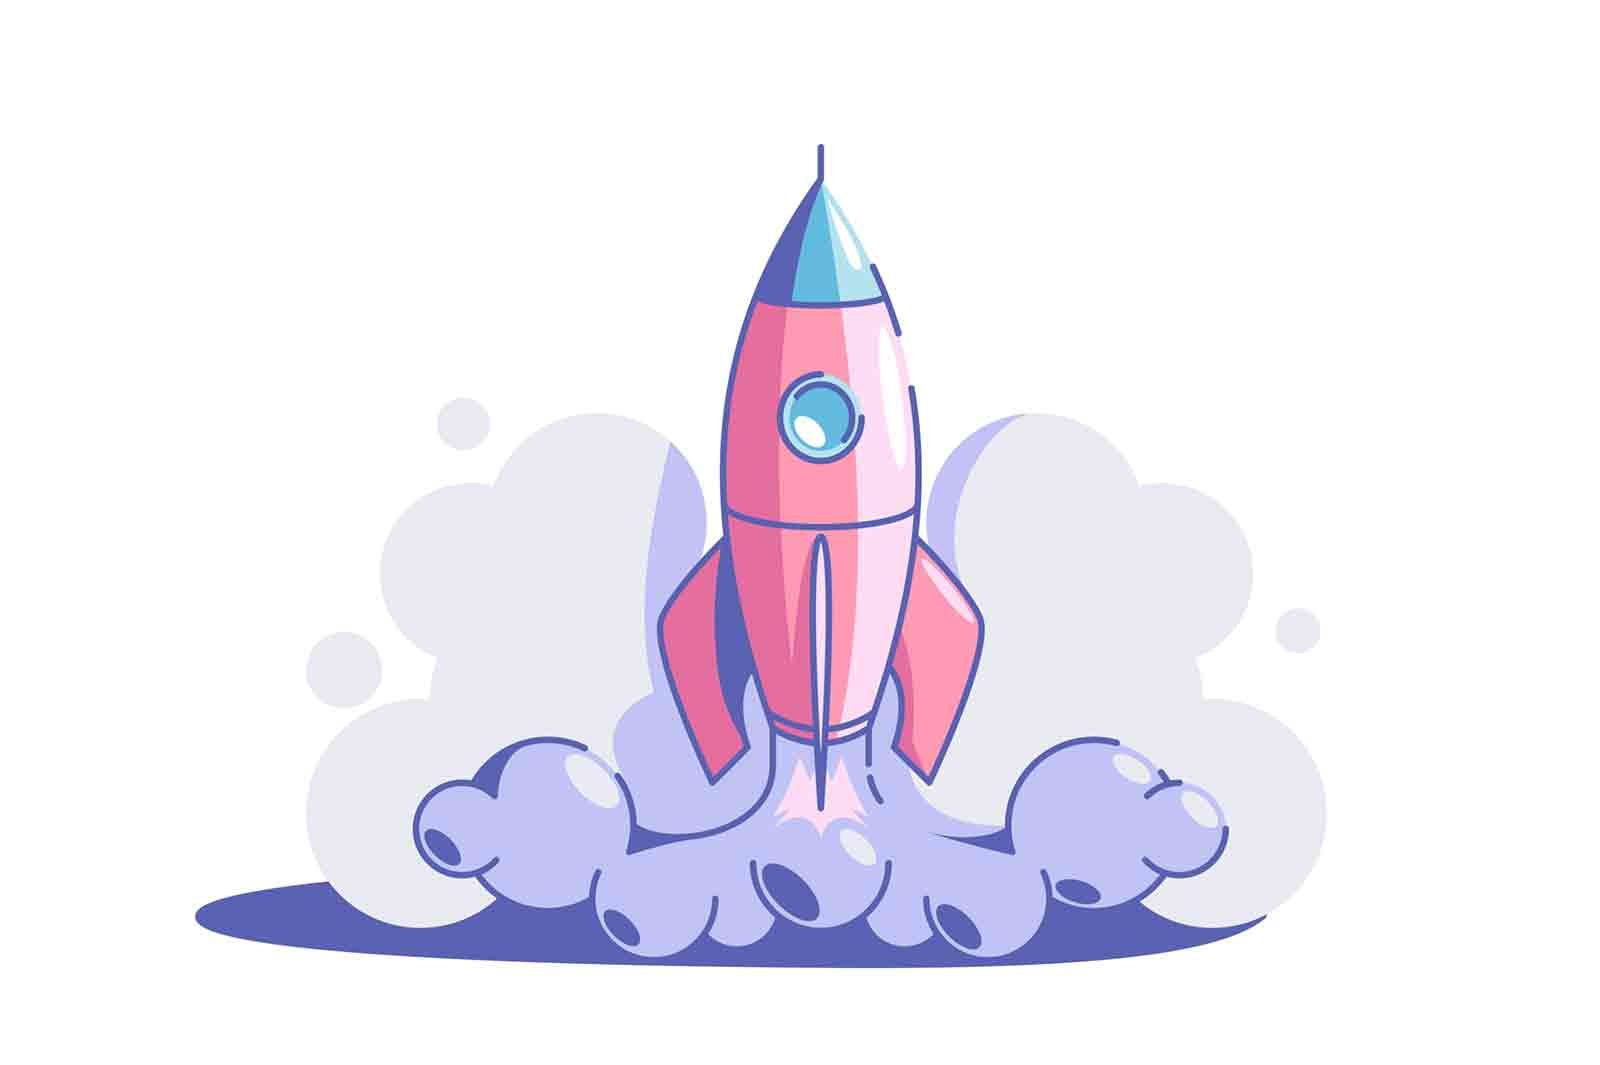 Start up rocket vector illustration. Rocket launch flat style. Business creativity and achievement. Success and goal. New creative idea and strategy.